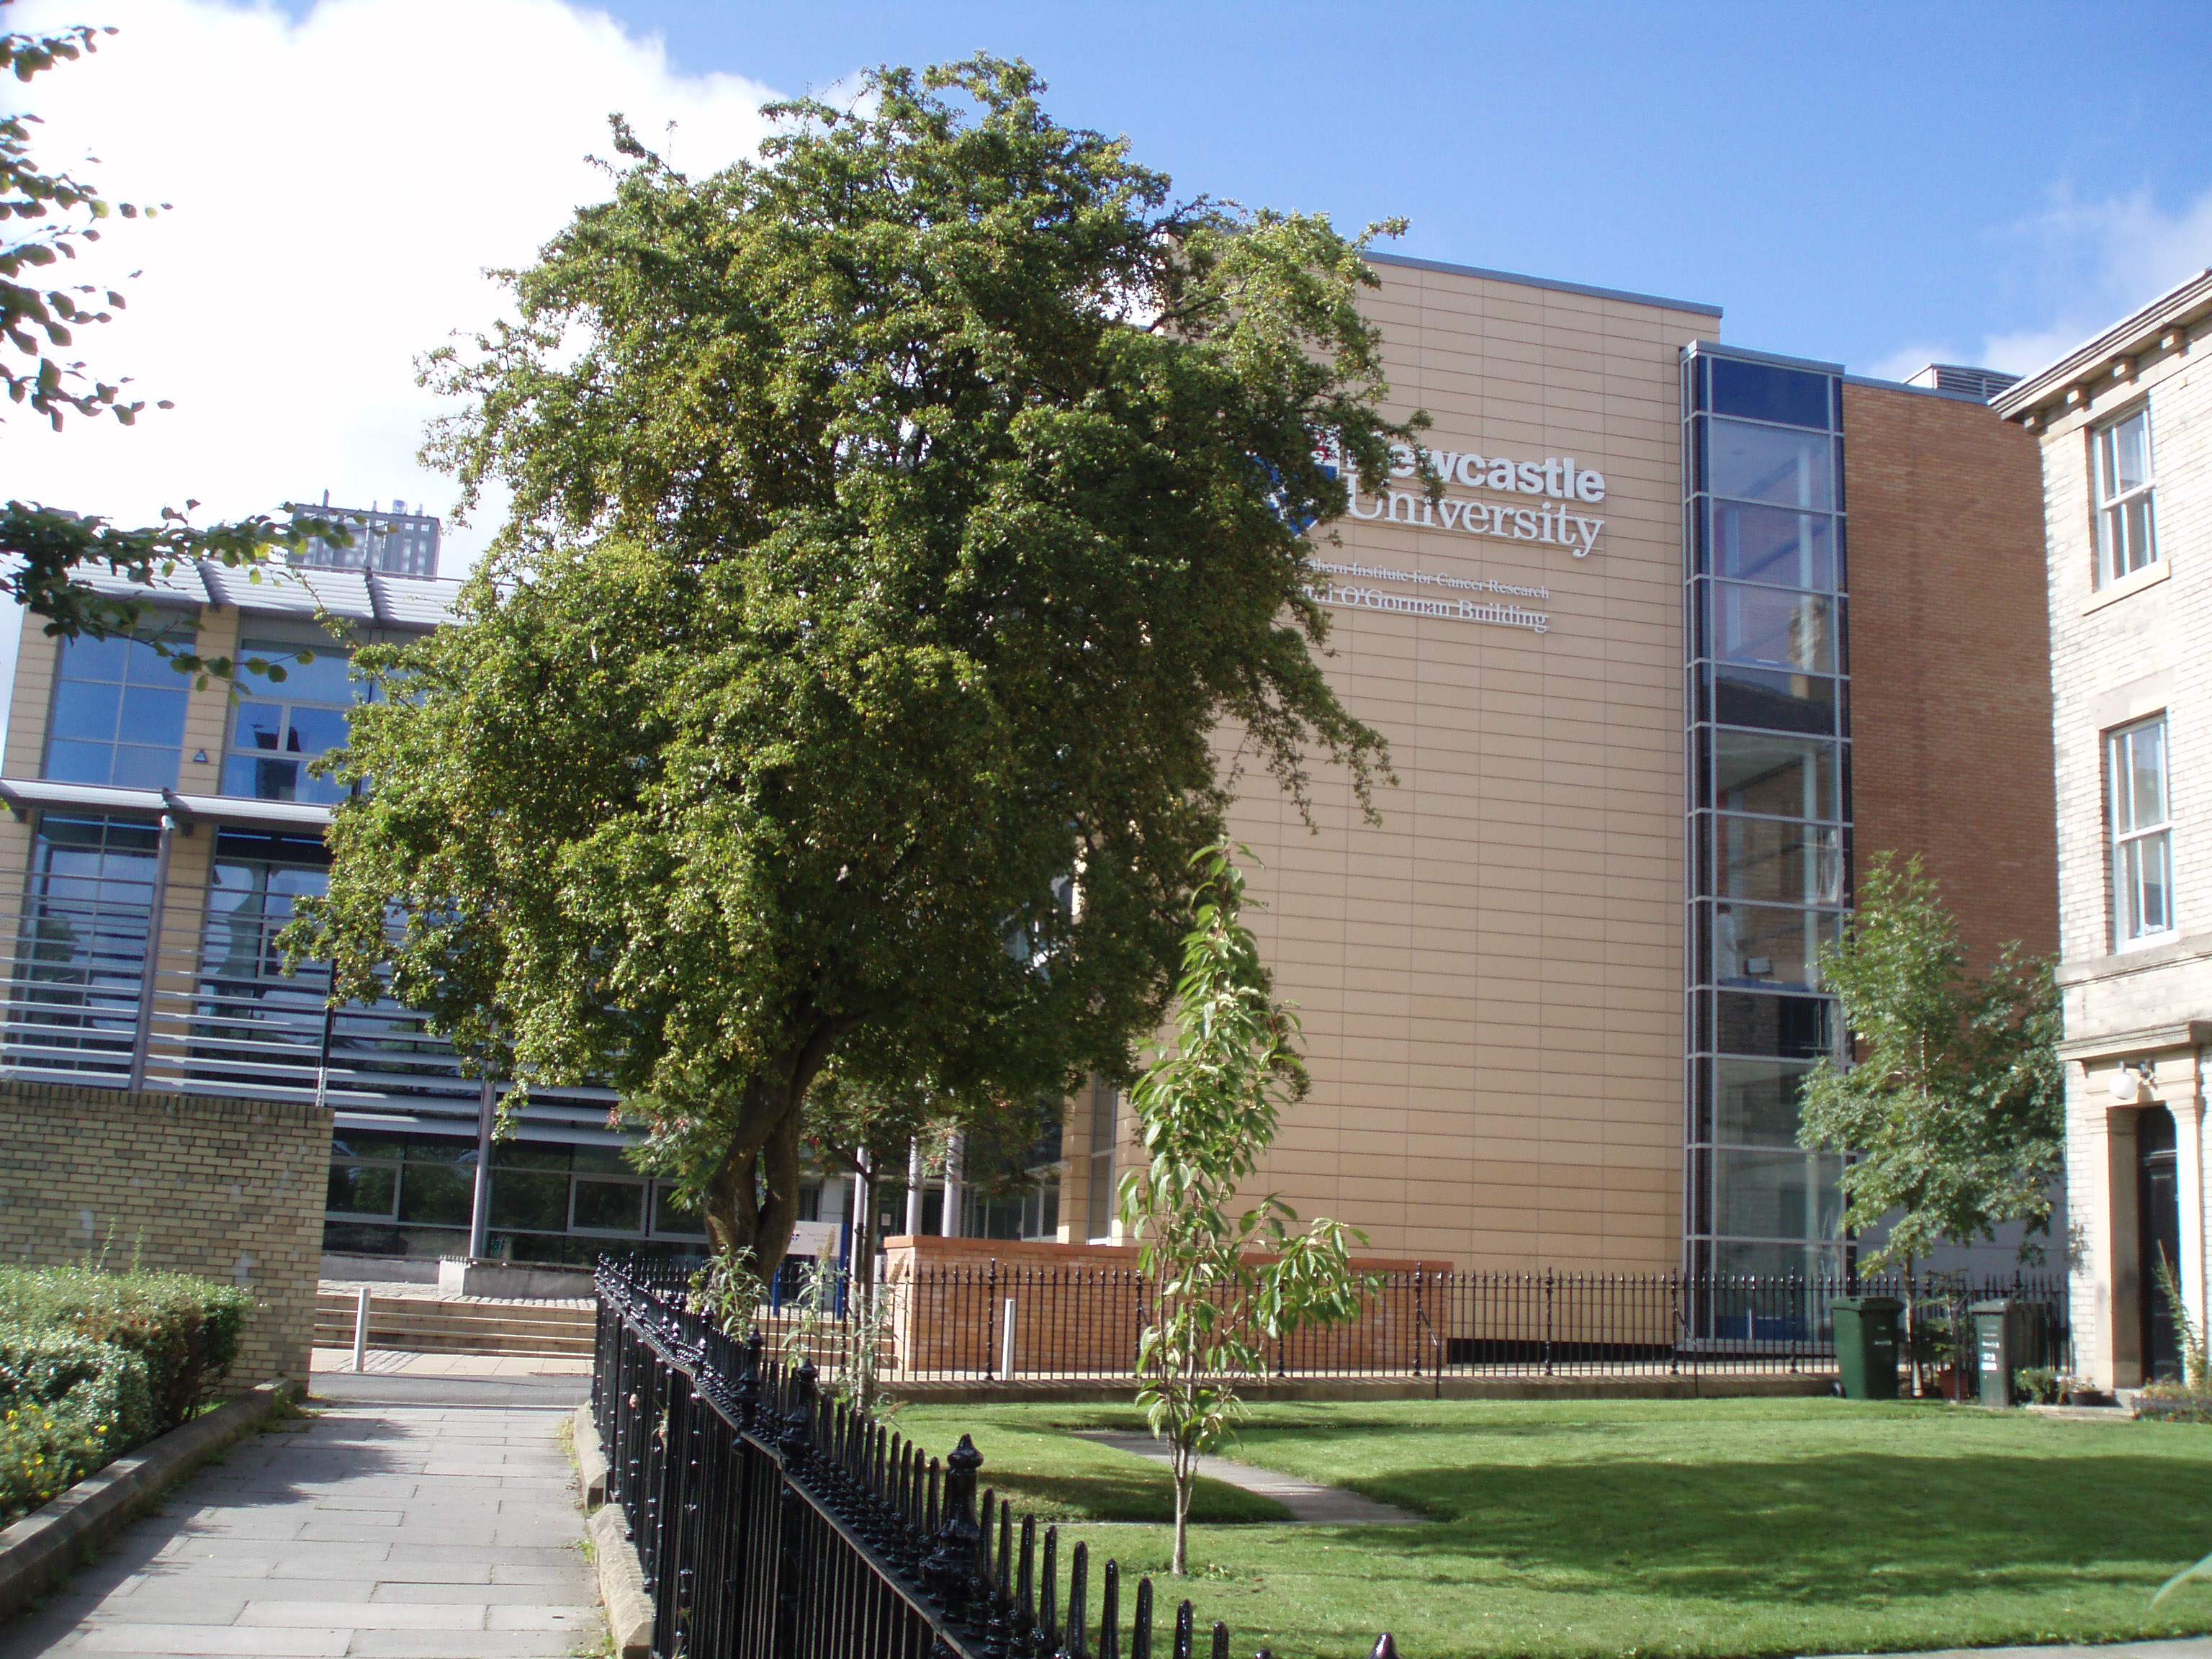 newcastle university thesis guidelines